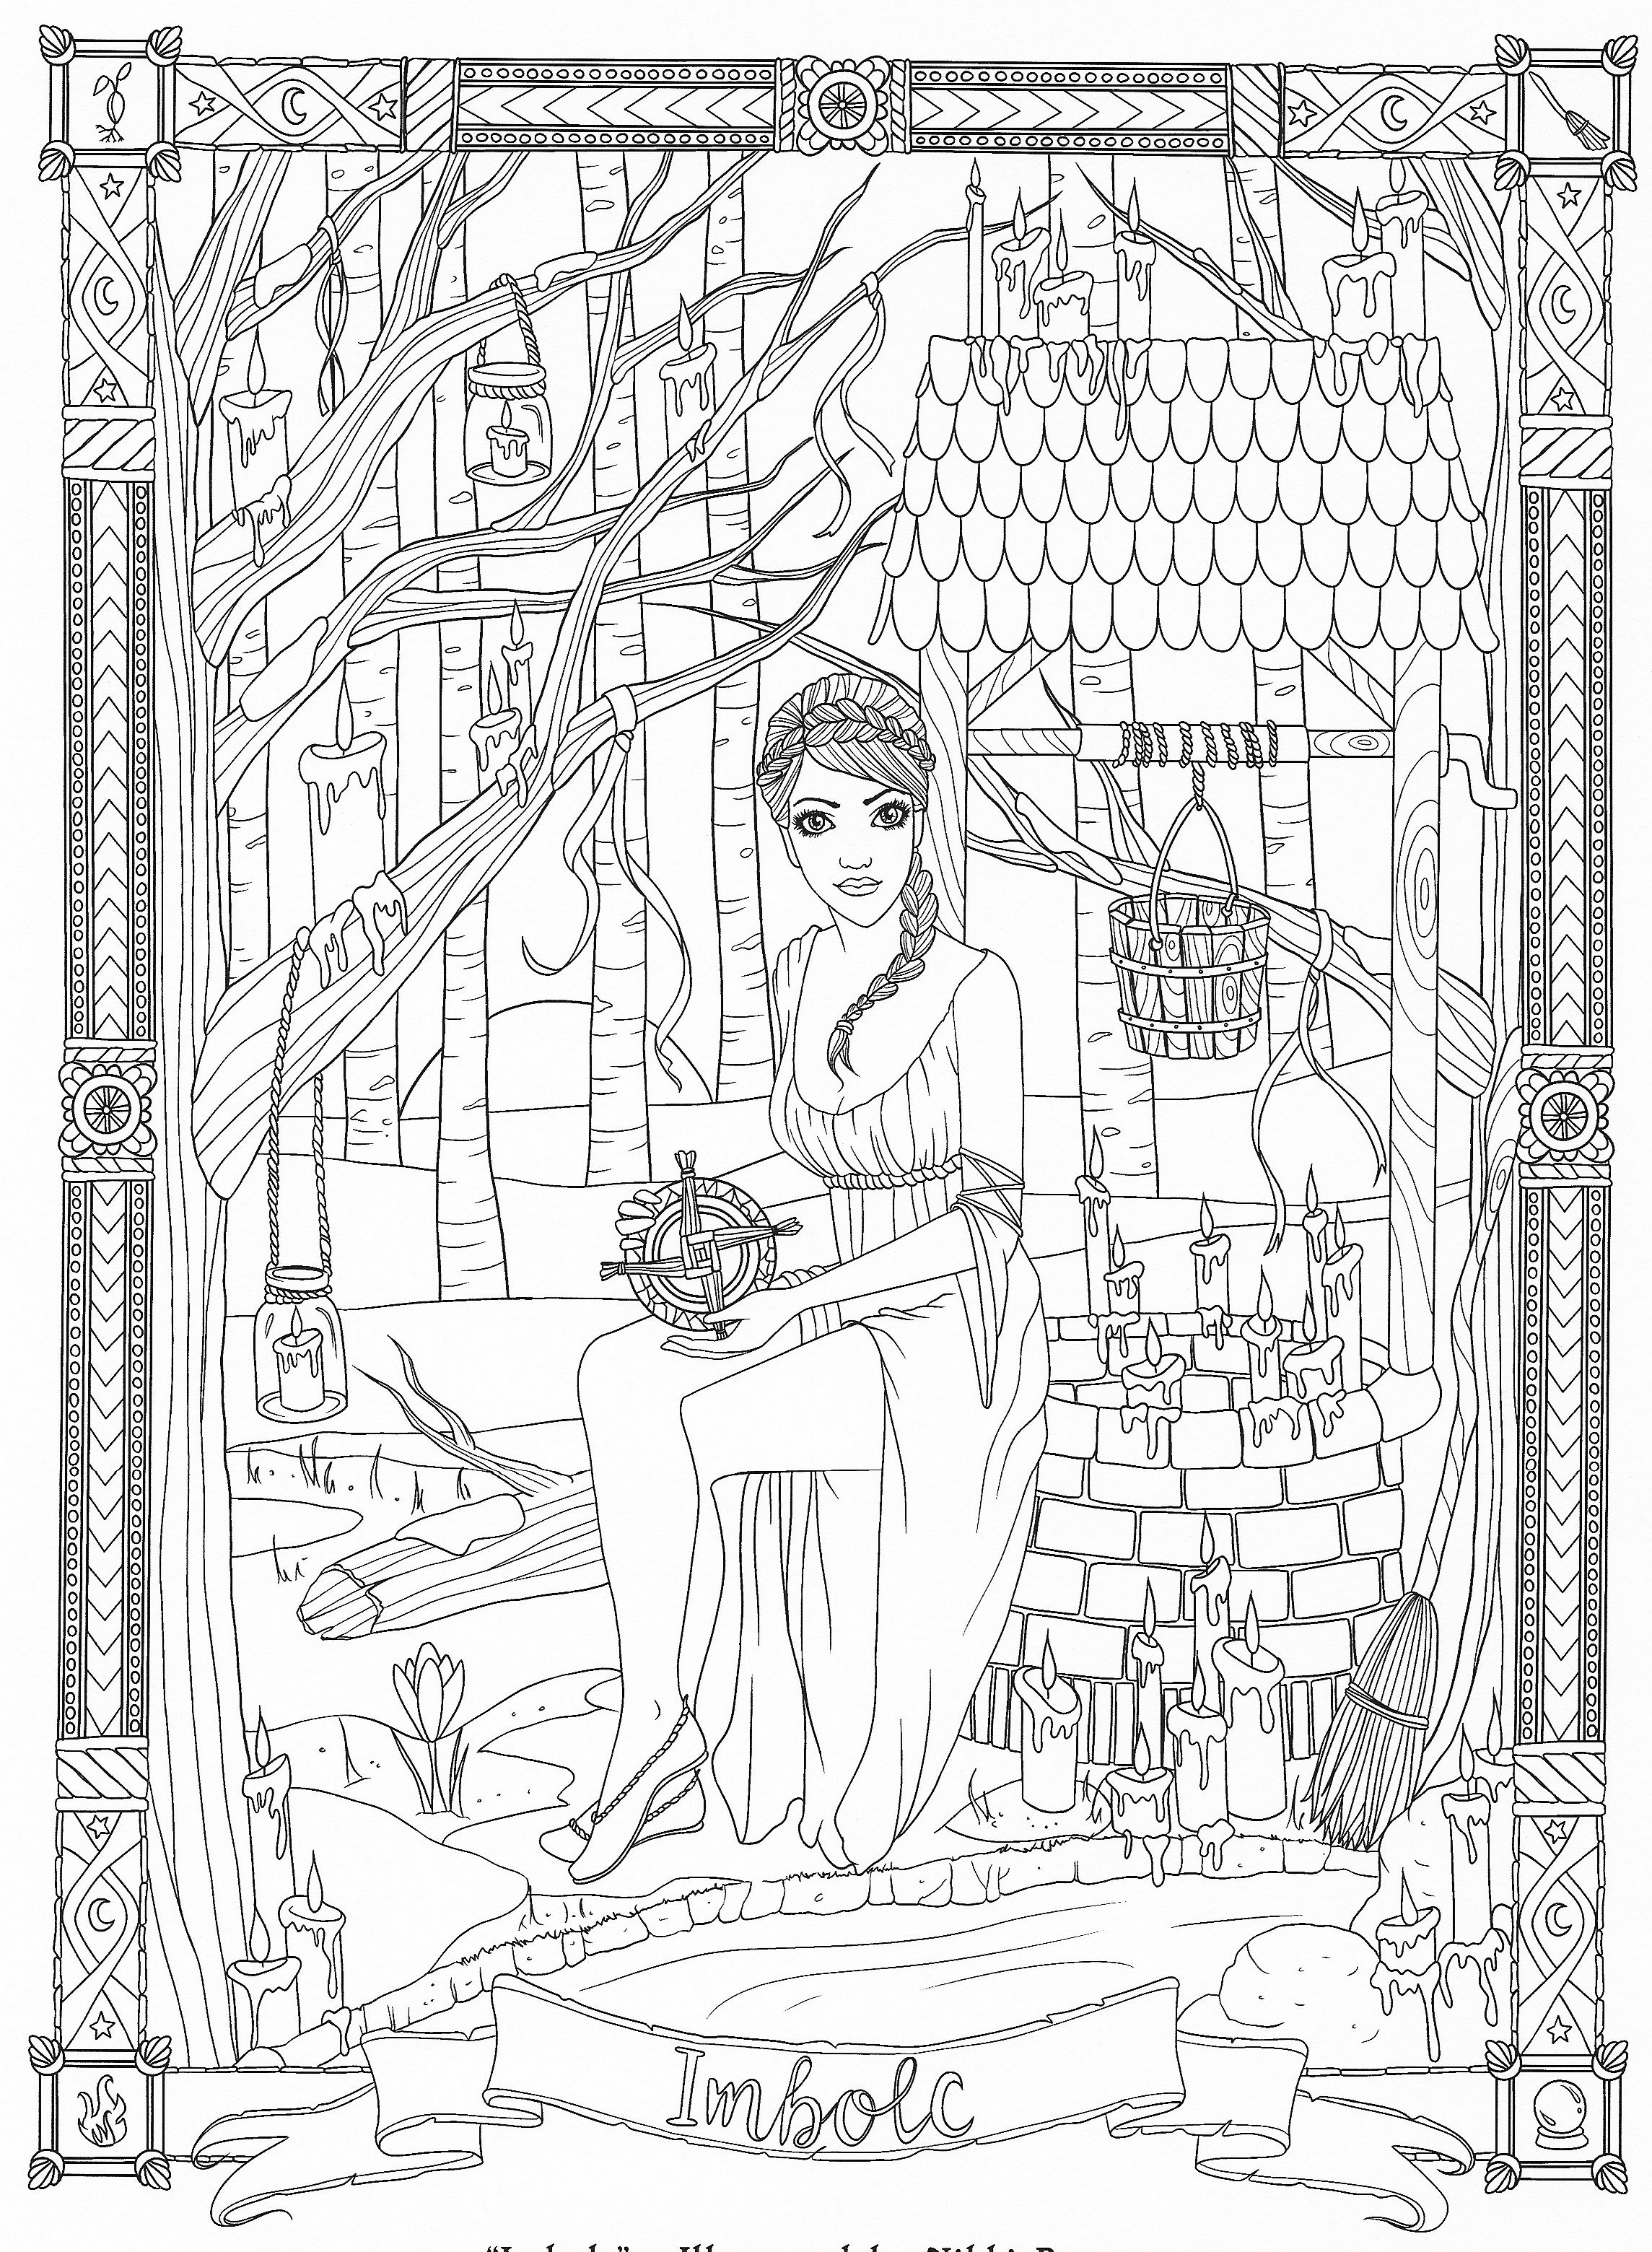 maiden sitting by a well colouring page zentangles